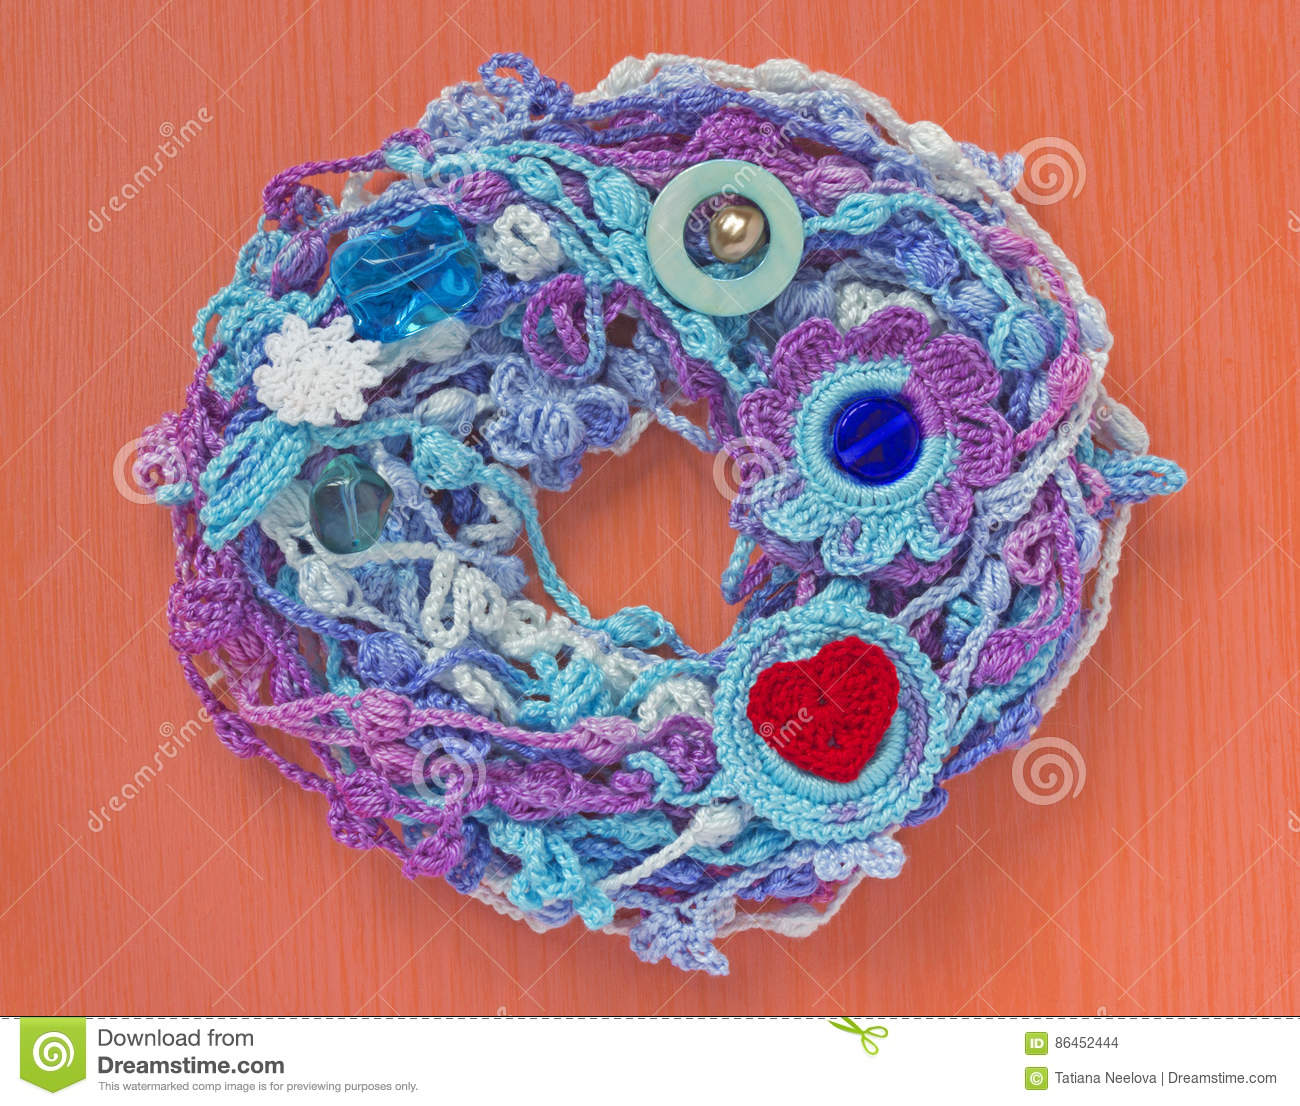 Handmade Crocheted Cotton Lace Wreath White Crochet Frame Knitted